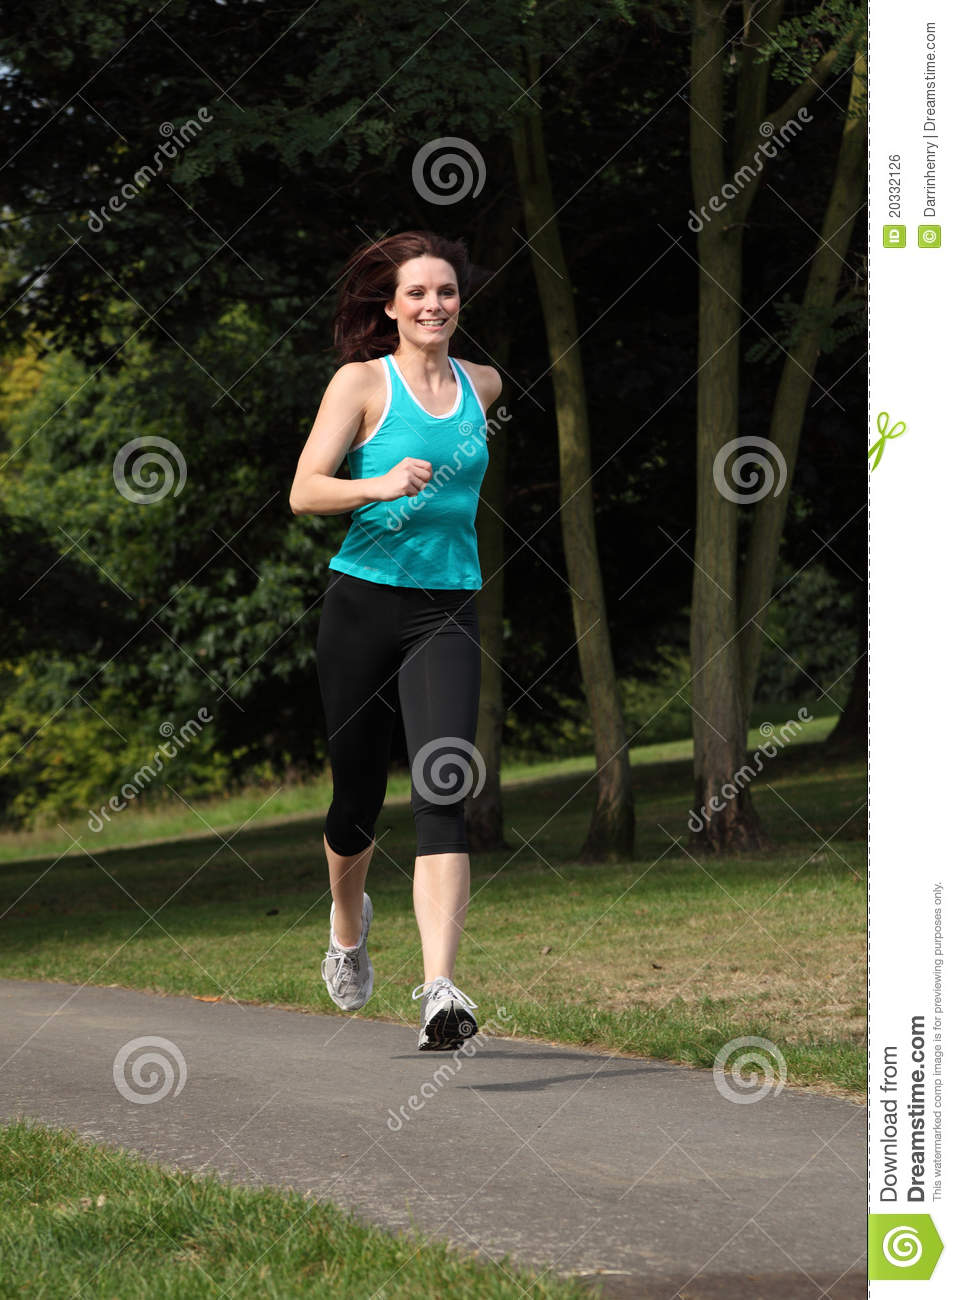 Beautiful fit young woman running park royalty free, 5 8 0 6 9 1 7 4 2